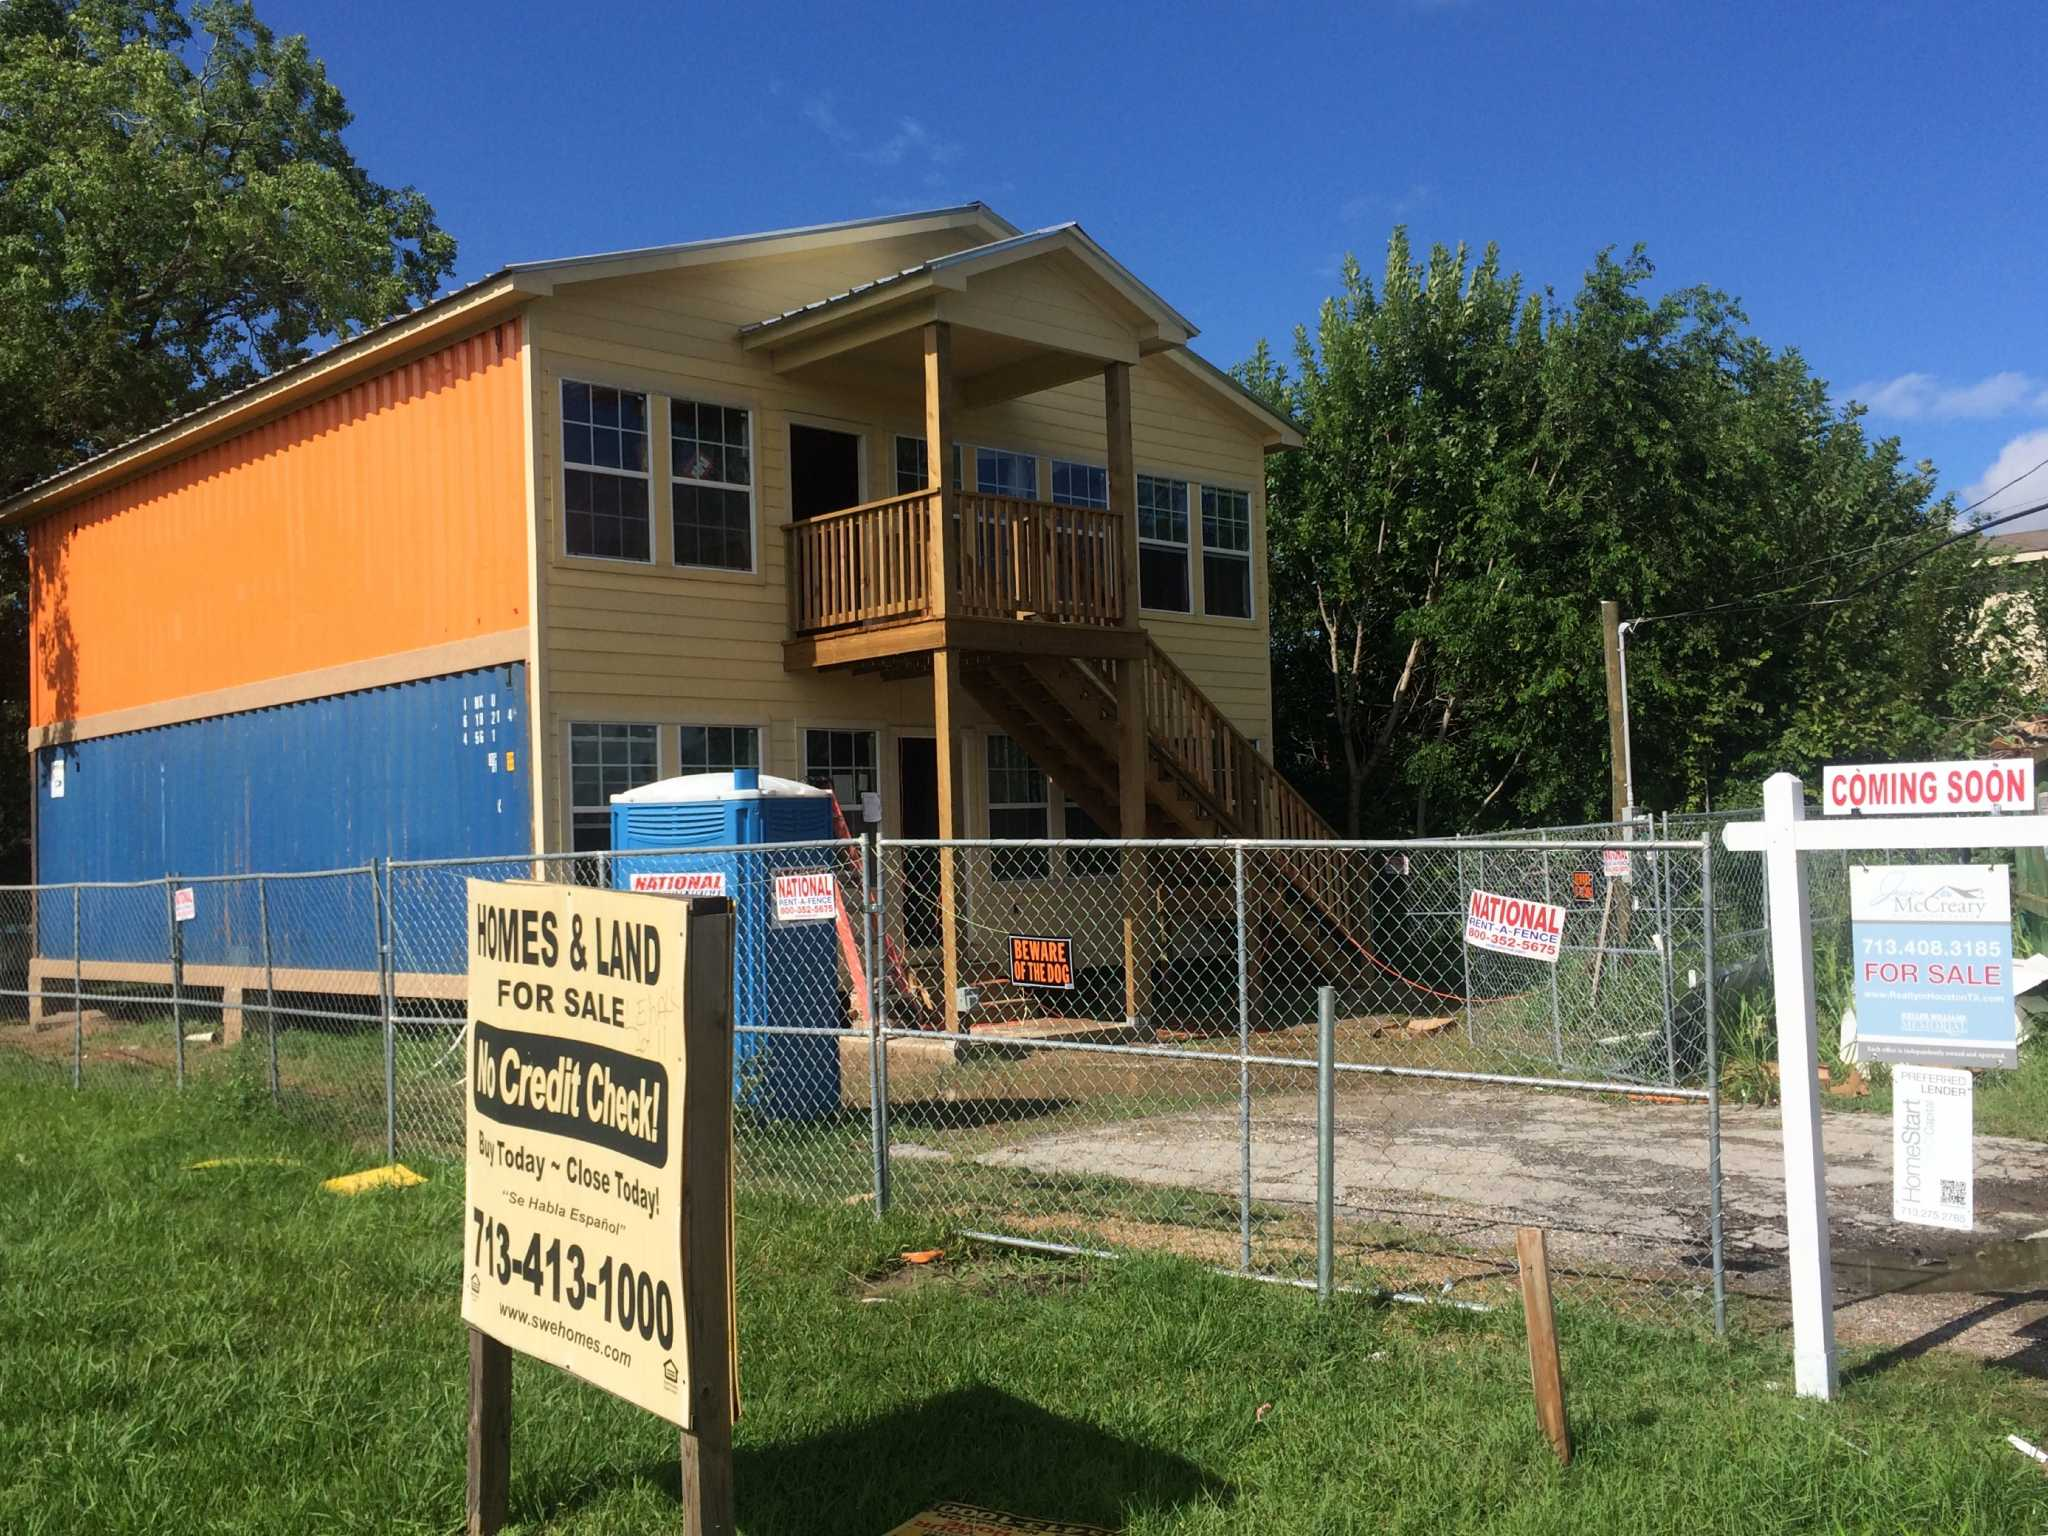 Recycled shipping containers could rejuvenate neighborhood houston chronicle - Container homes houston ...